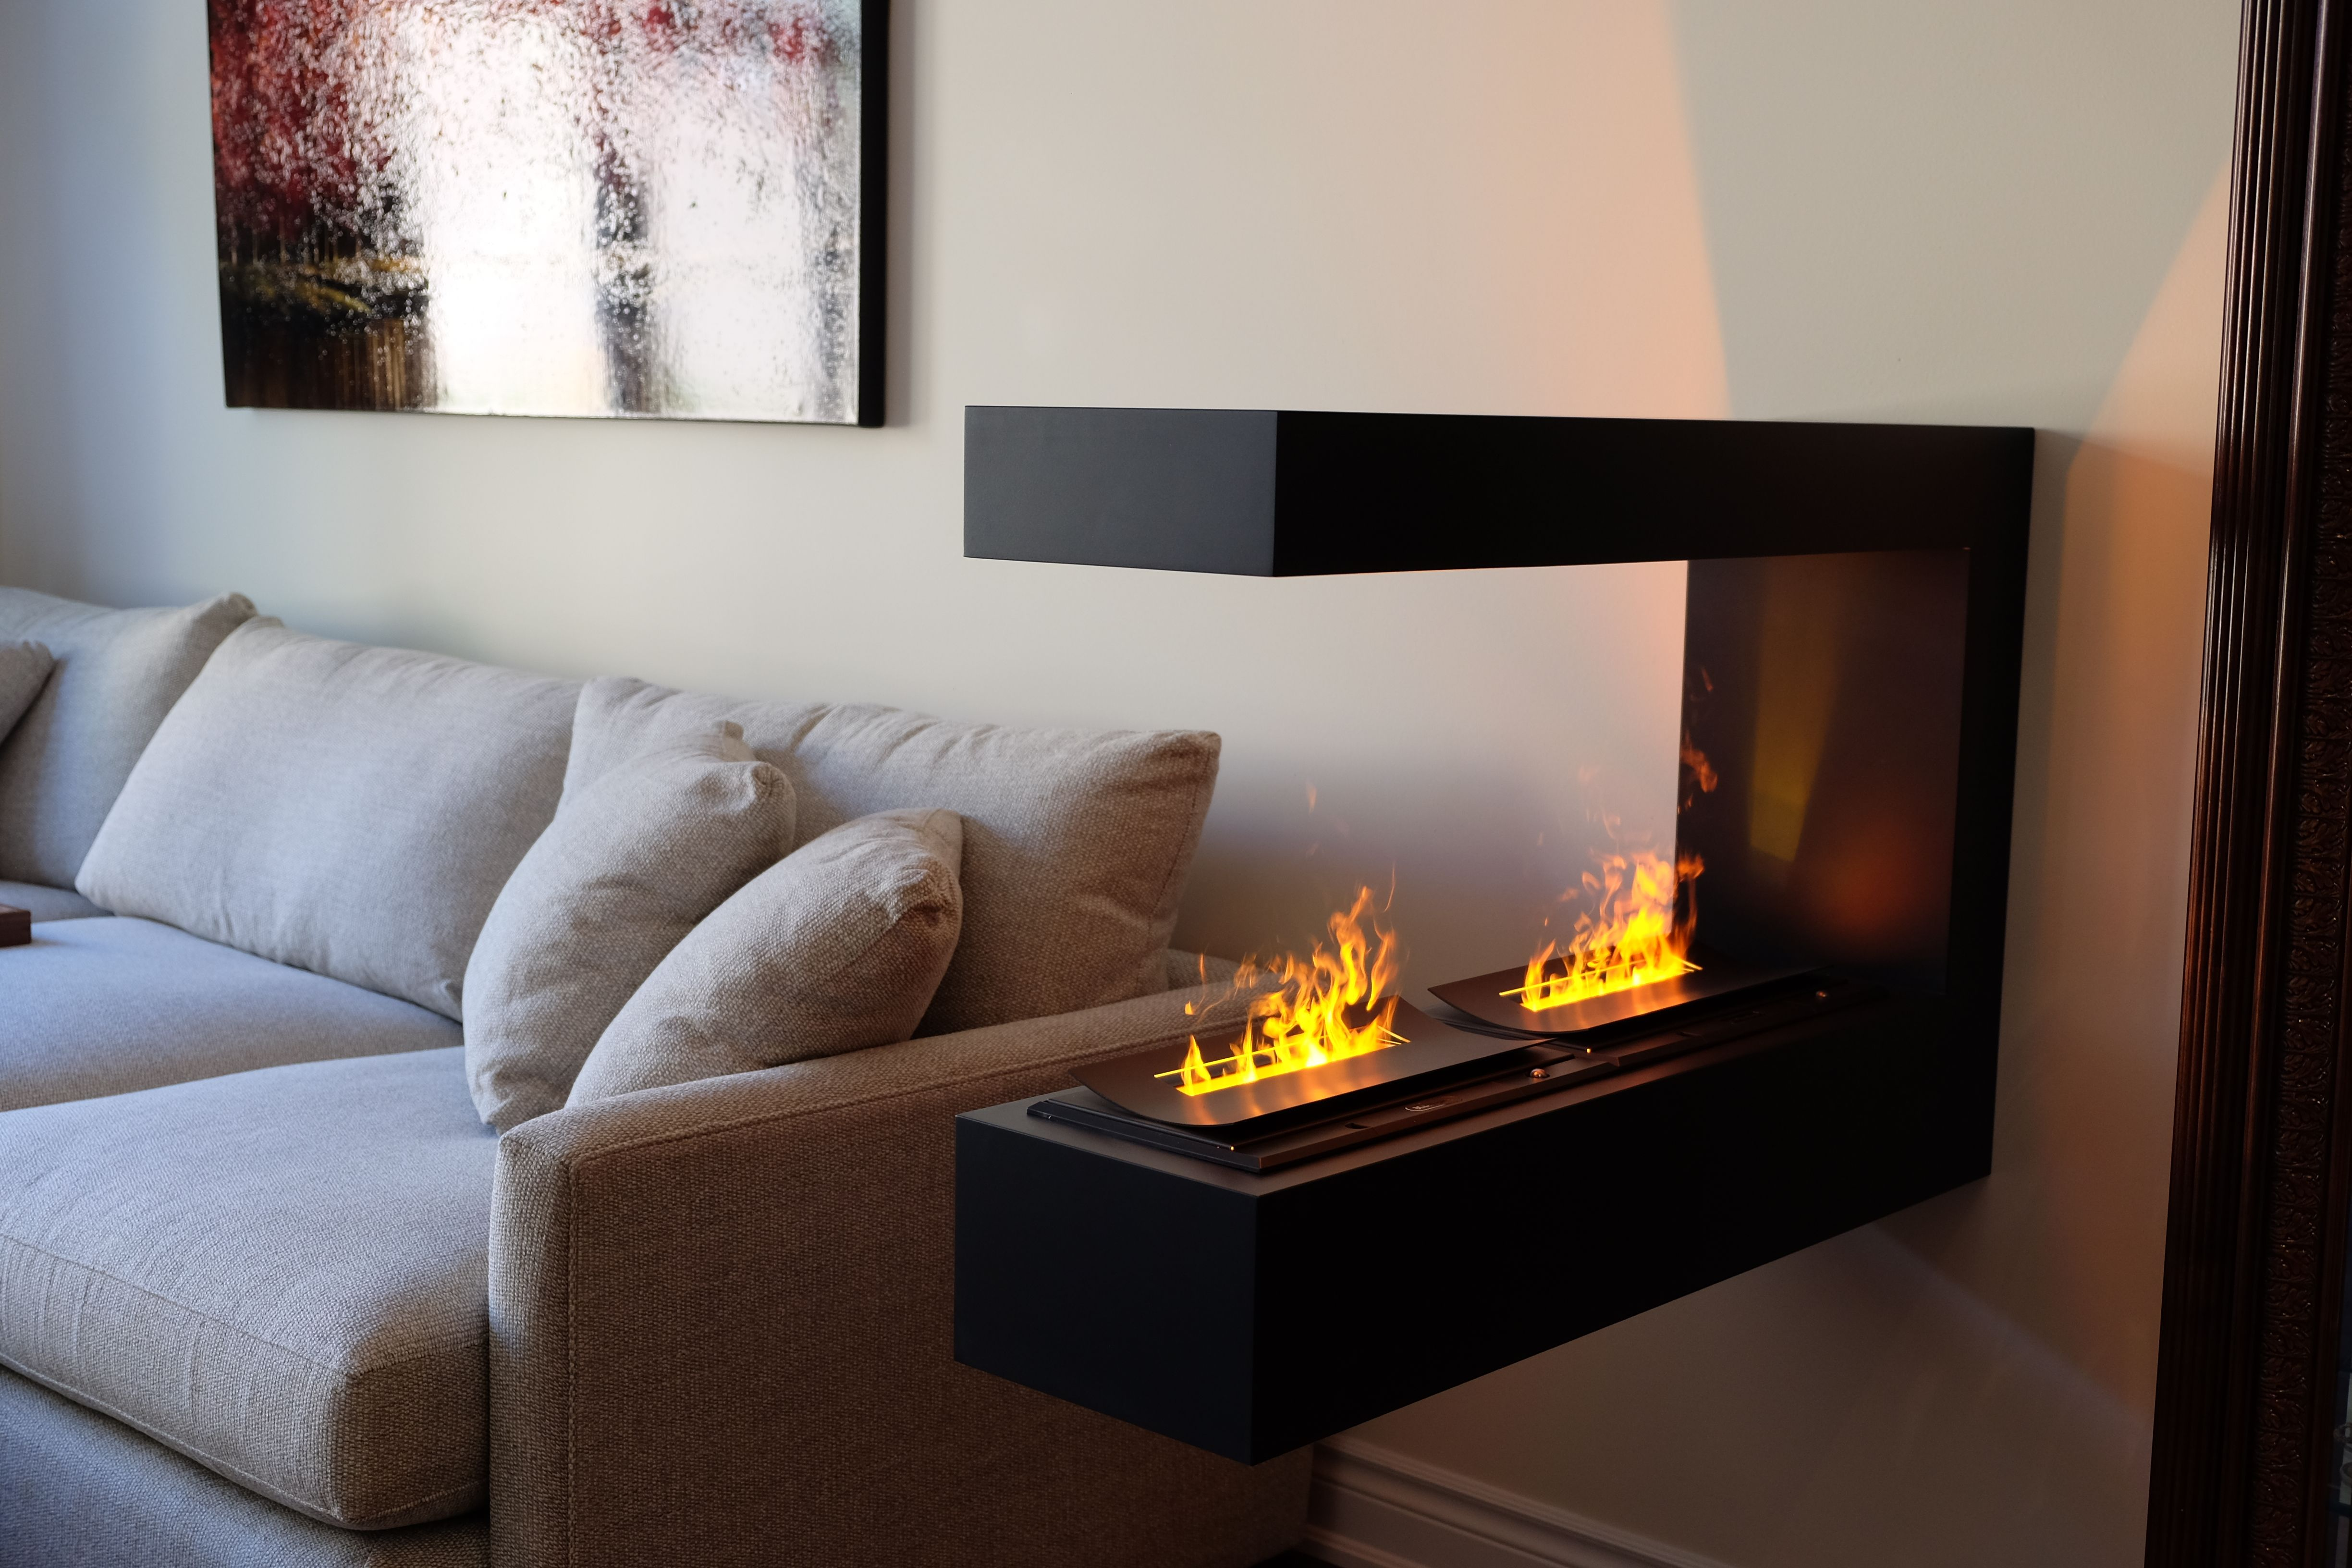 Peninsula Electric Fireplace With Water Vapor Technology Handmade Cabinets Fireplaces Toronto